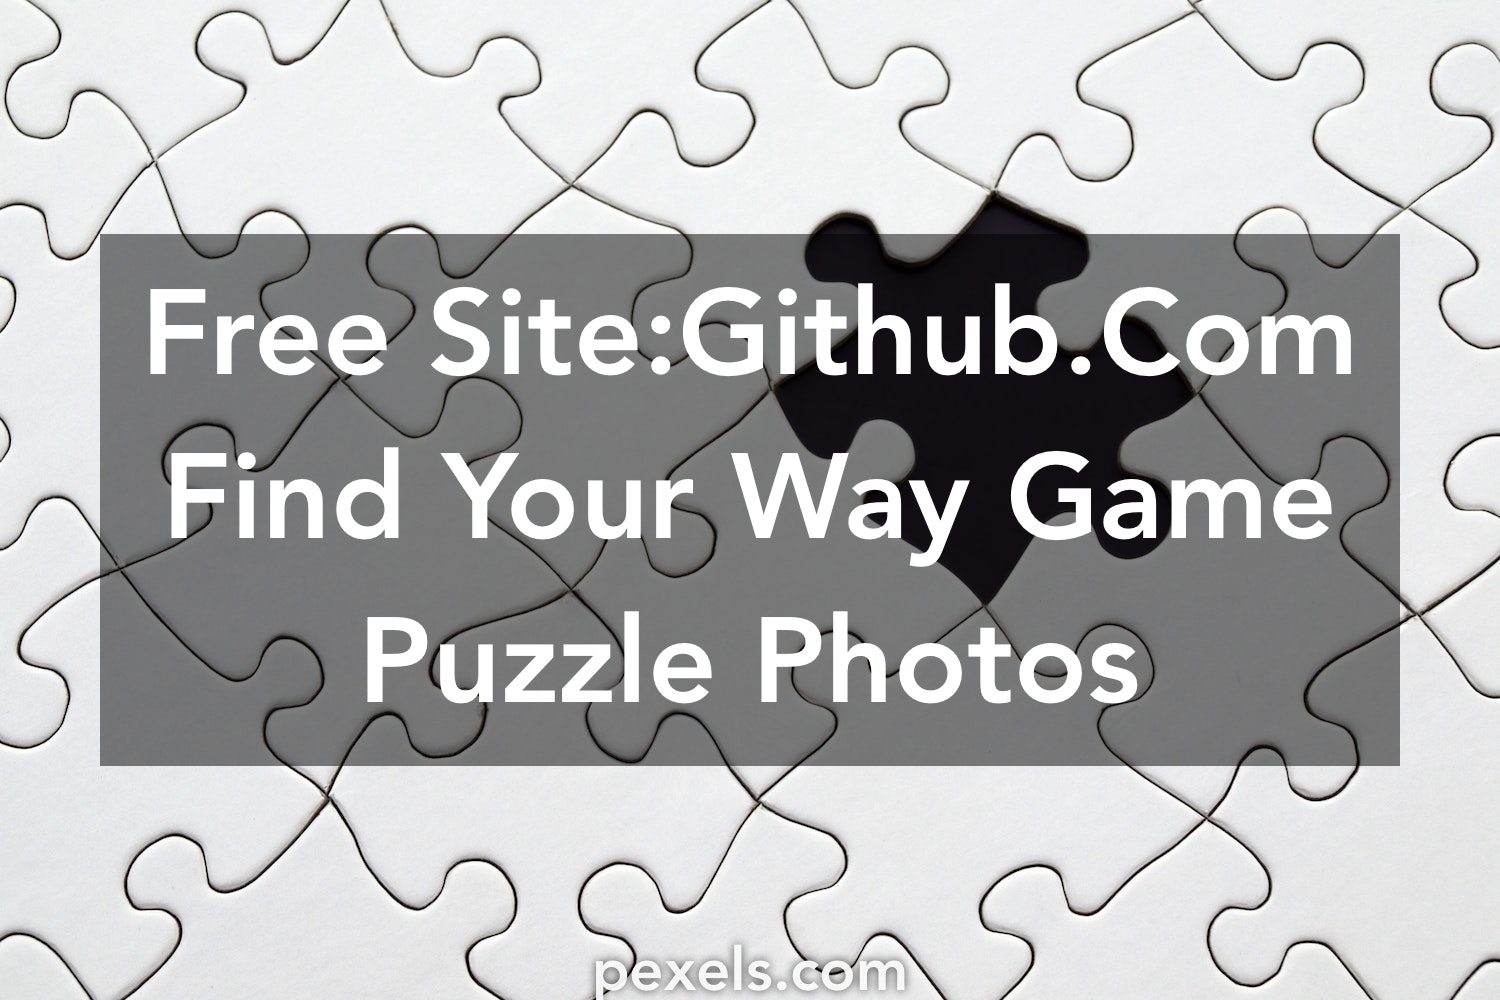 1000+ Beautiful Site:Github Com Find Your Way Game Puzzle Photos